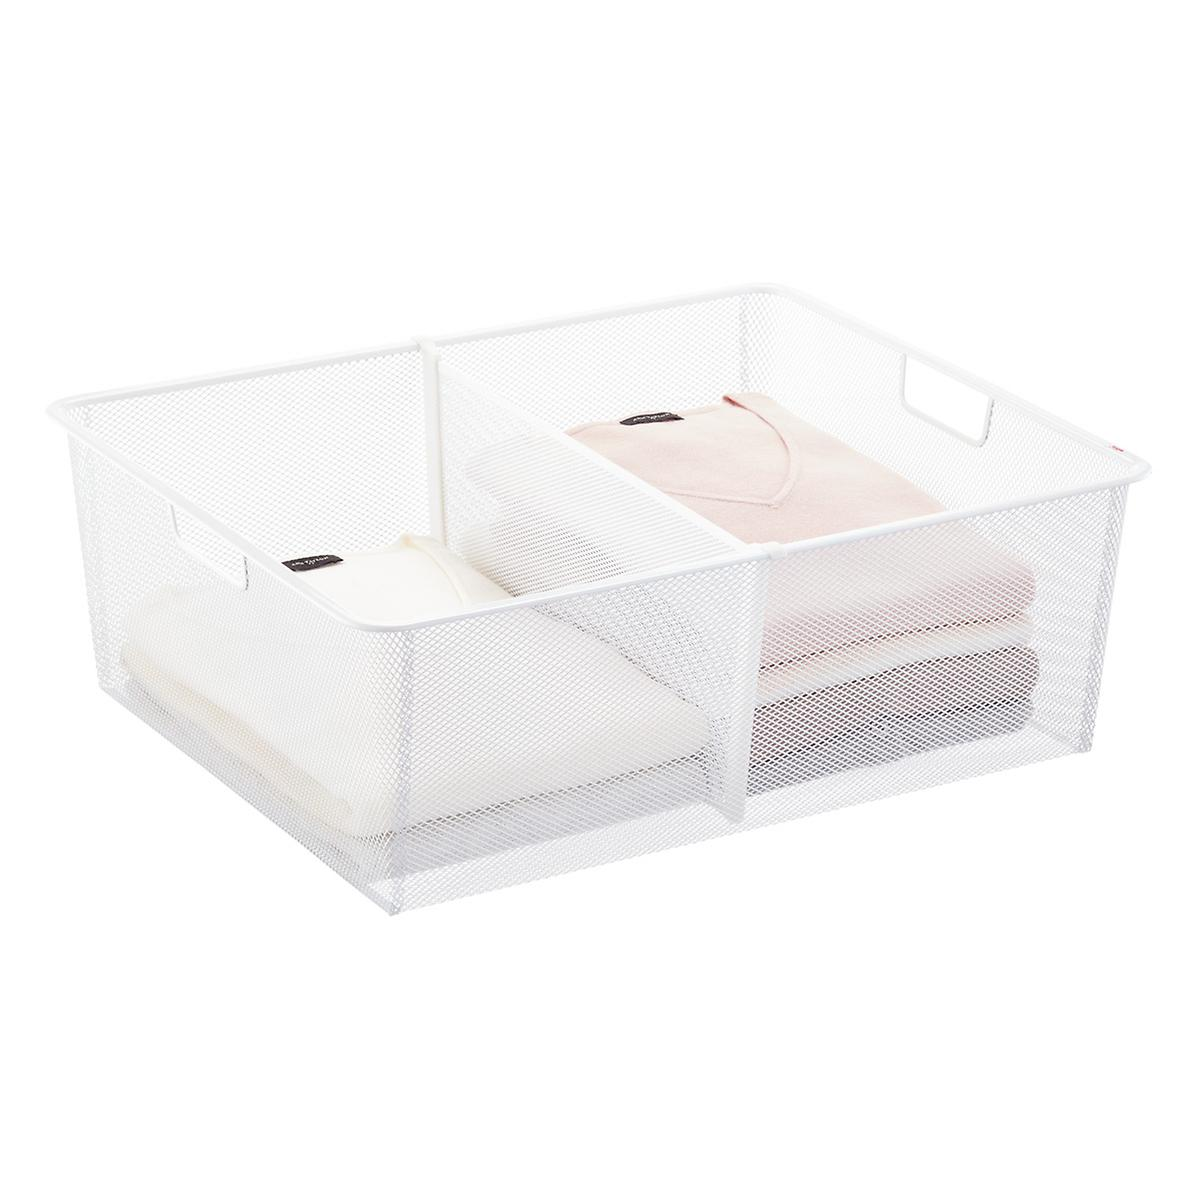 Elfa White Medium Mesh Drawer Dividers